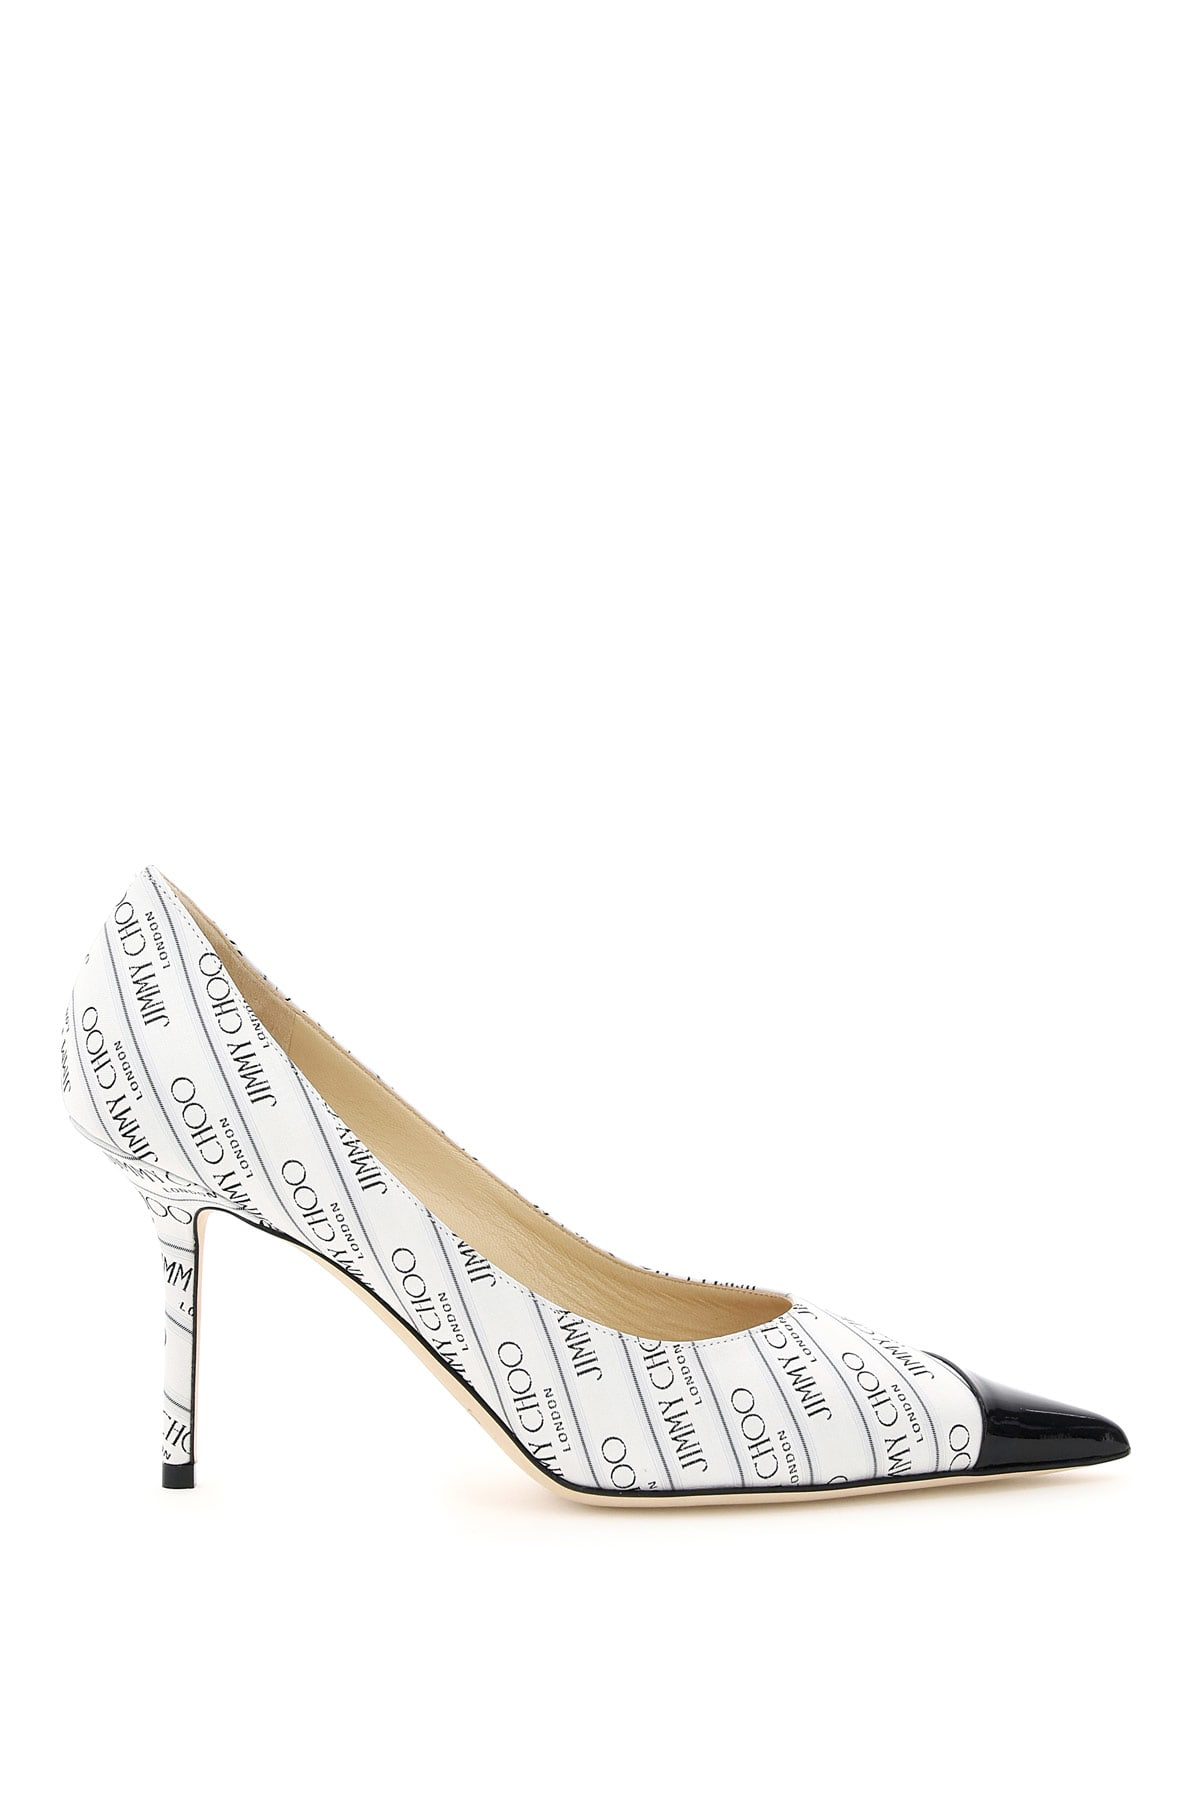 JIMMY CHOO LOVE 85 PUMPS WITH JACQUARD LOGO